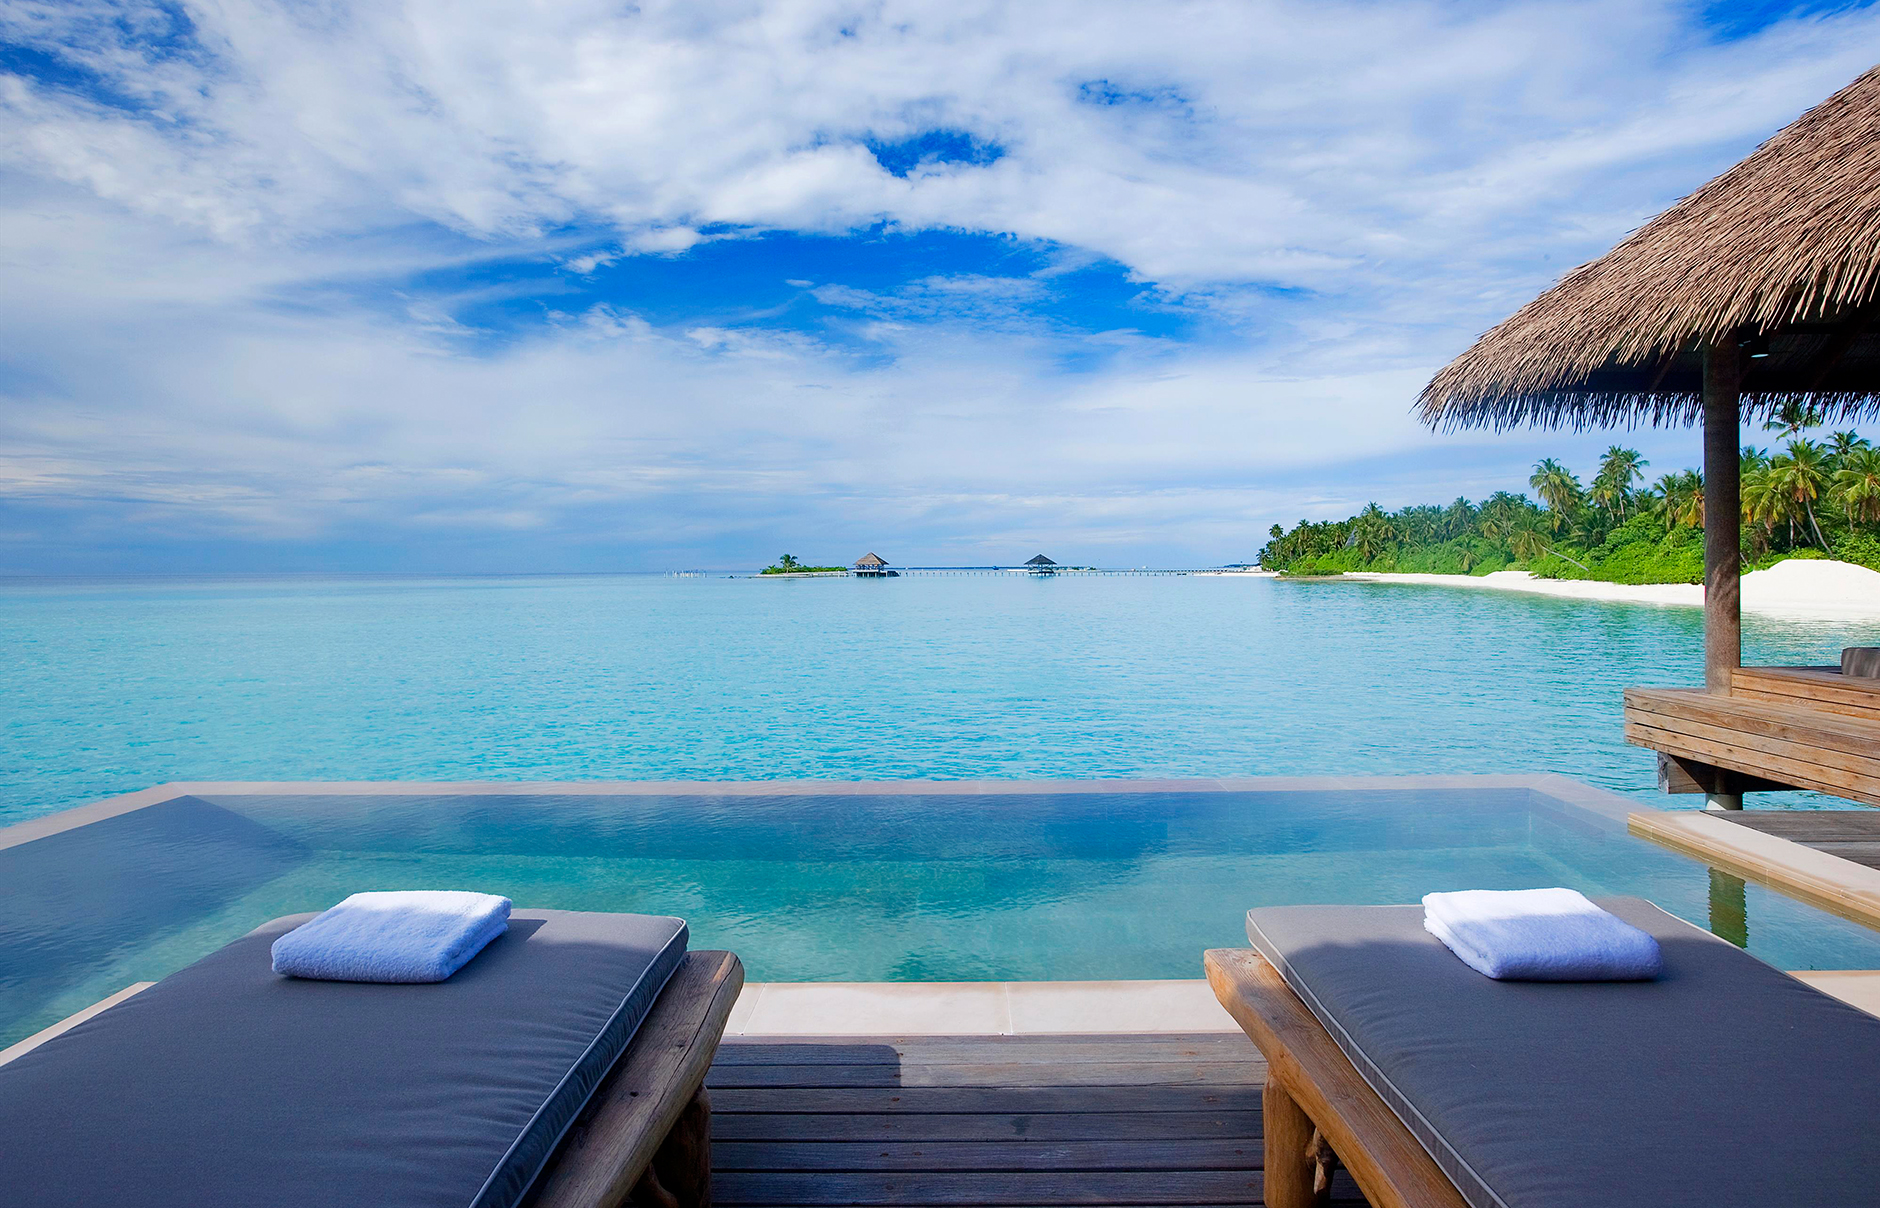 Its the como hotels newest island resort with a sumptuous array of overwater villas and garden suites surrounded by the tranquil sea maalifushi by como